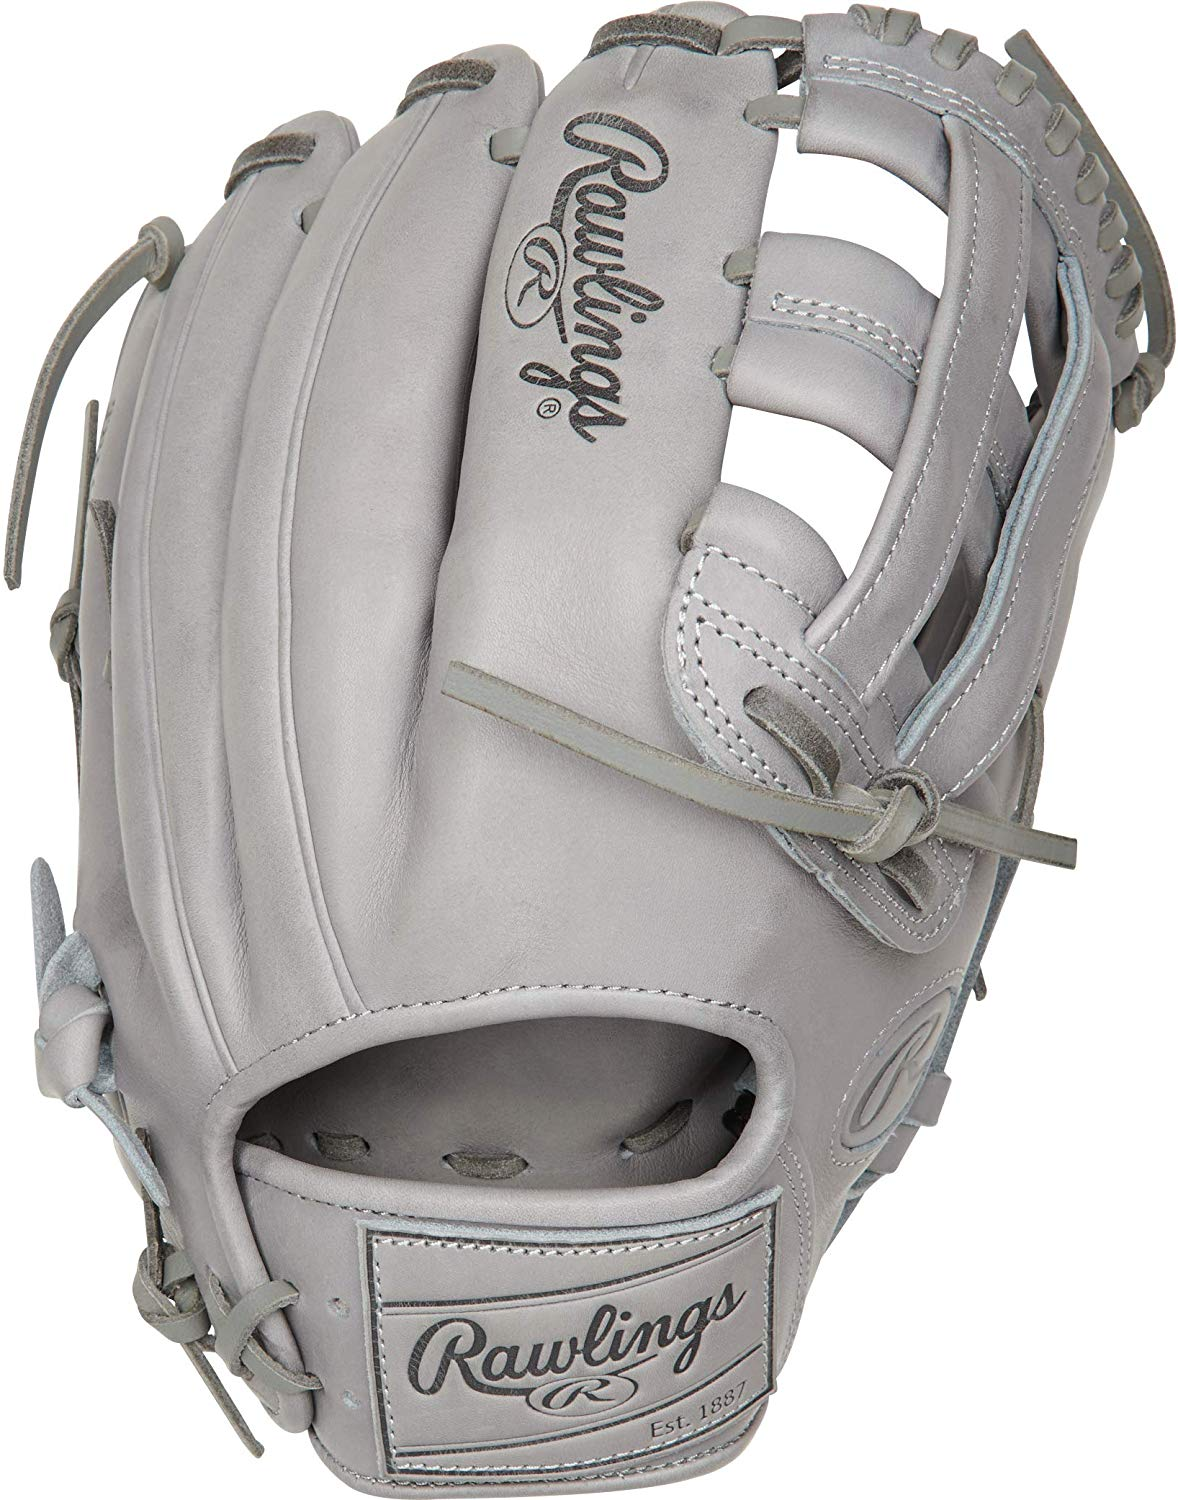 rawlings-pro-label-grey-baseball-glove-12-25-right-hand-throw PROKB17-6G-RightHandThrow  083321691393 <p>12.25 pattern Limited Edition Kris Bryant Pattern Indent Stamping On Shell